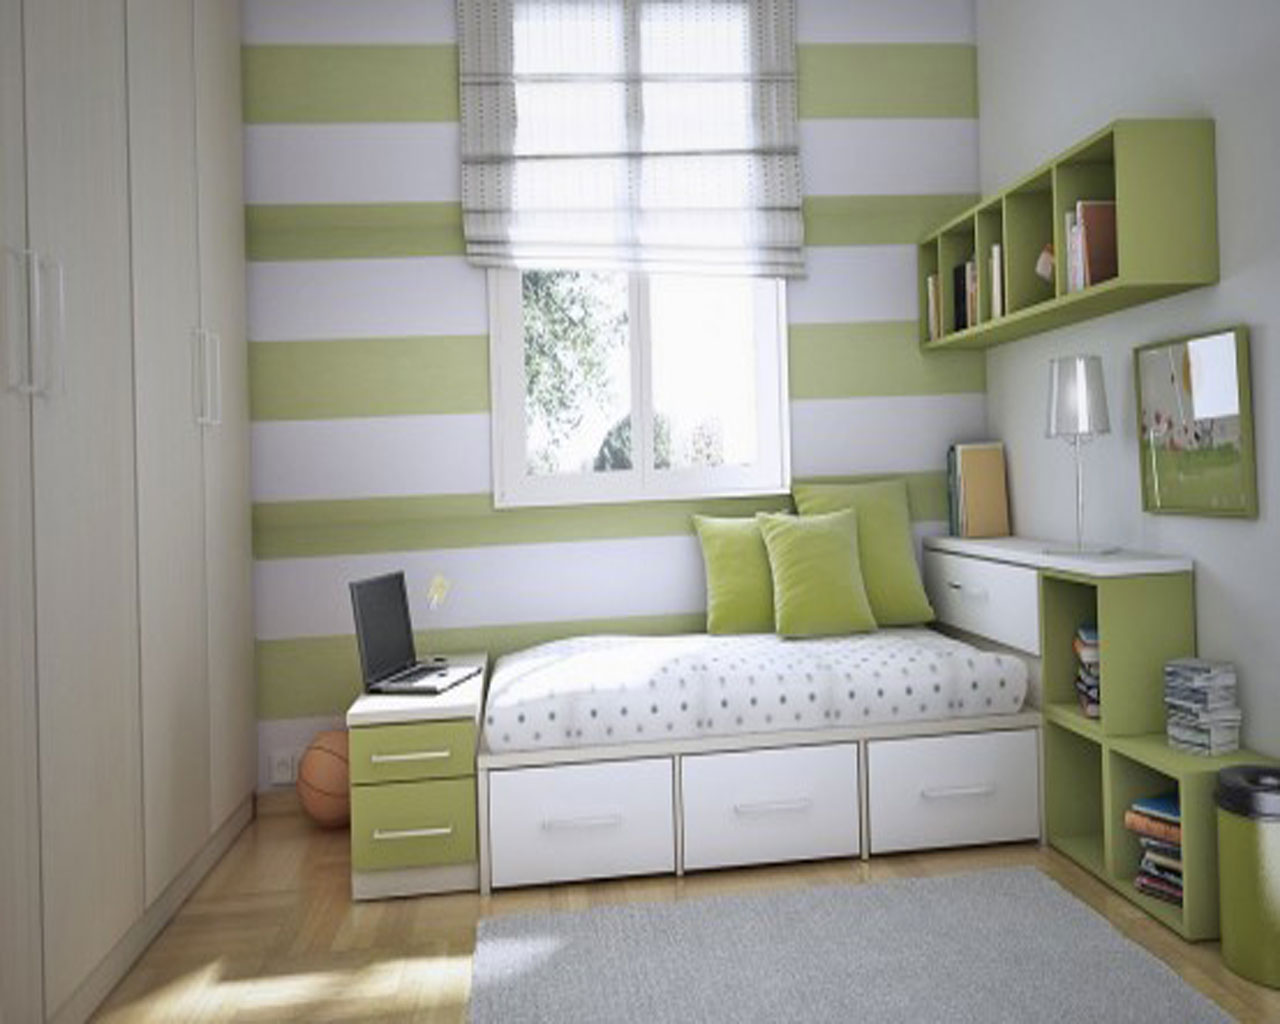 Best kids room design ideas times news uk for Room interior design for teenagers